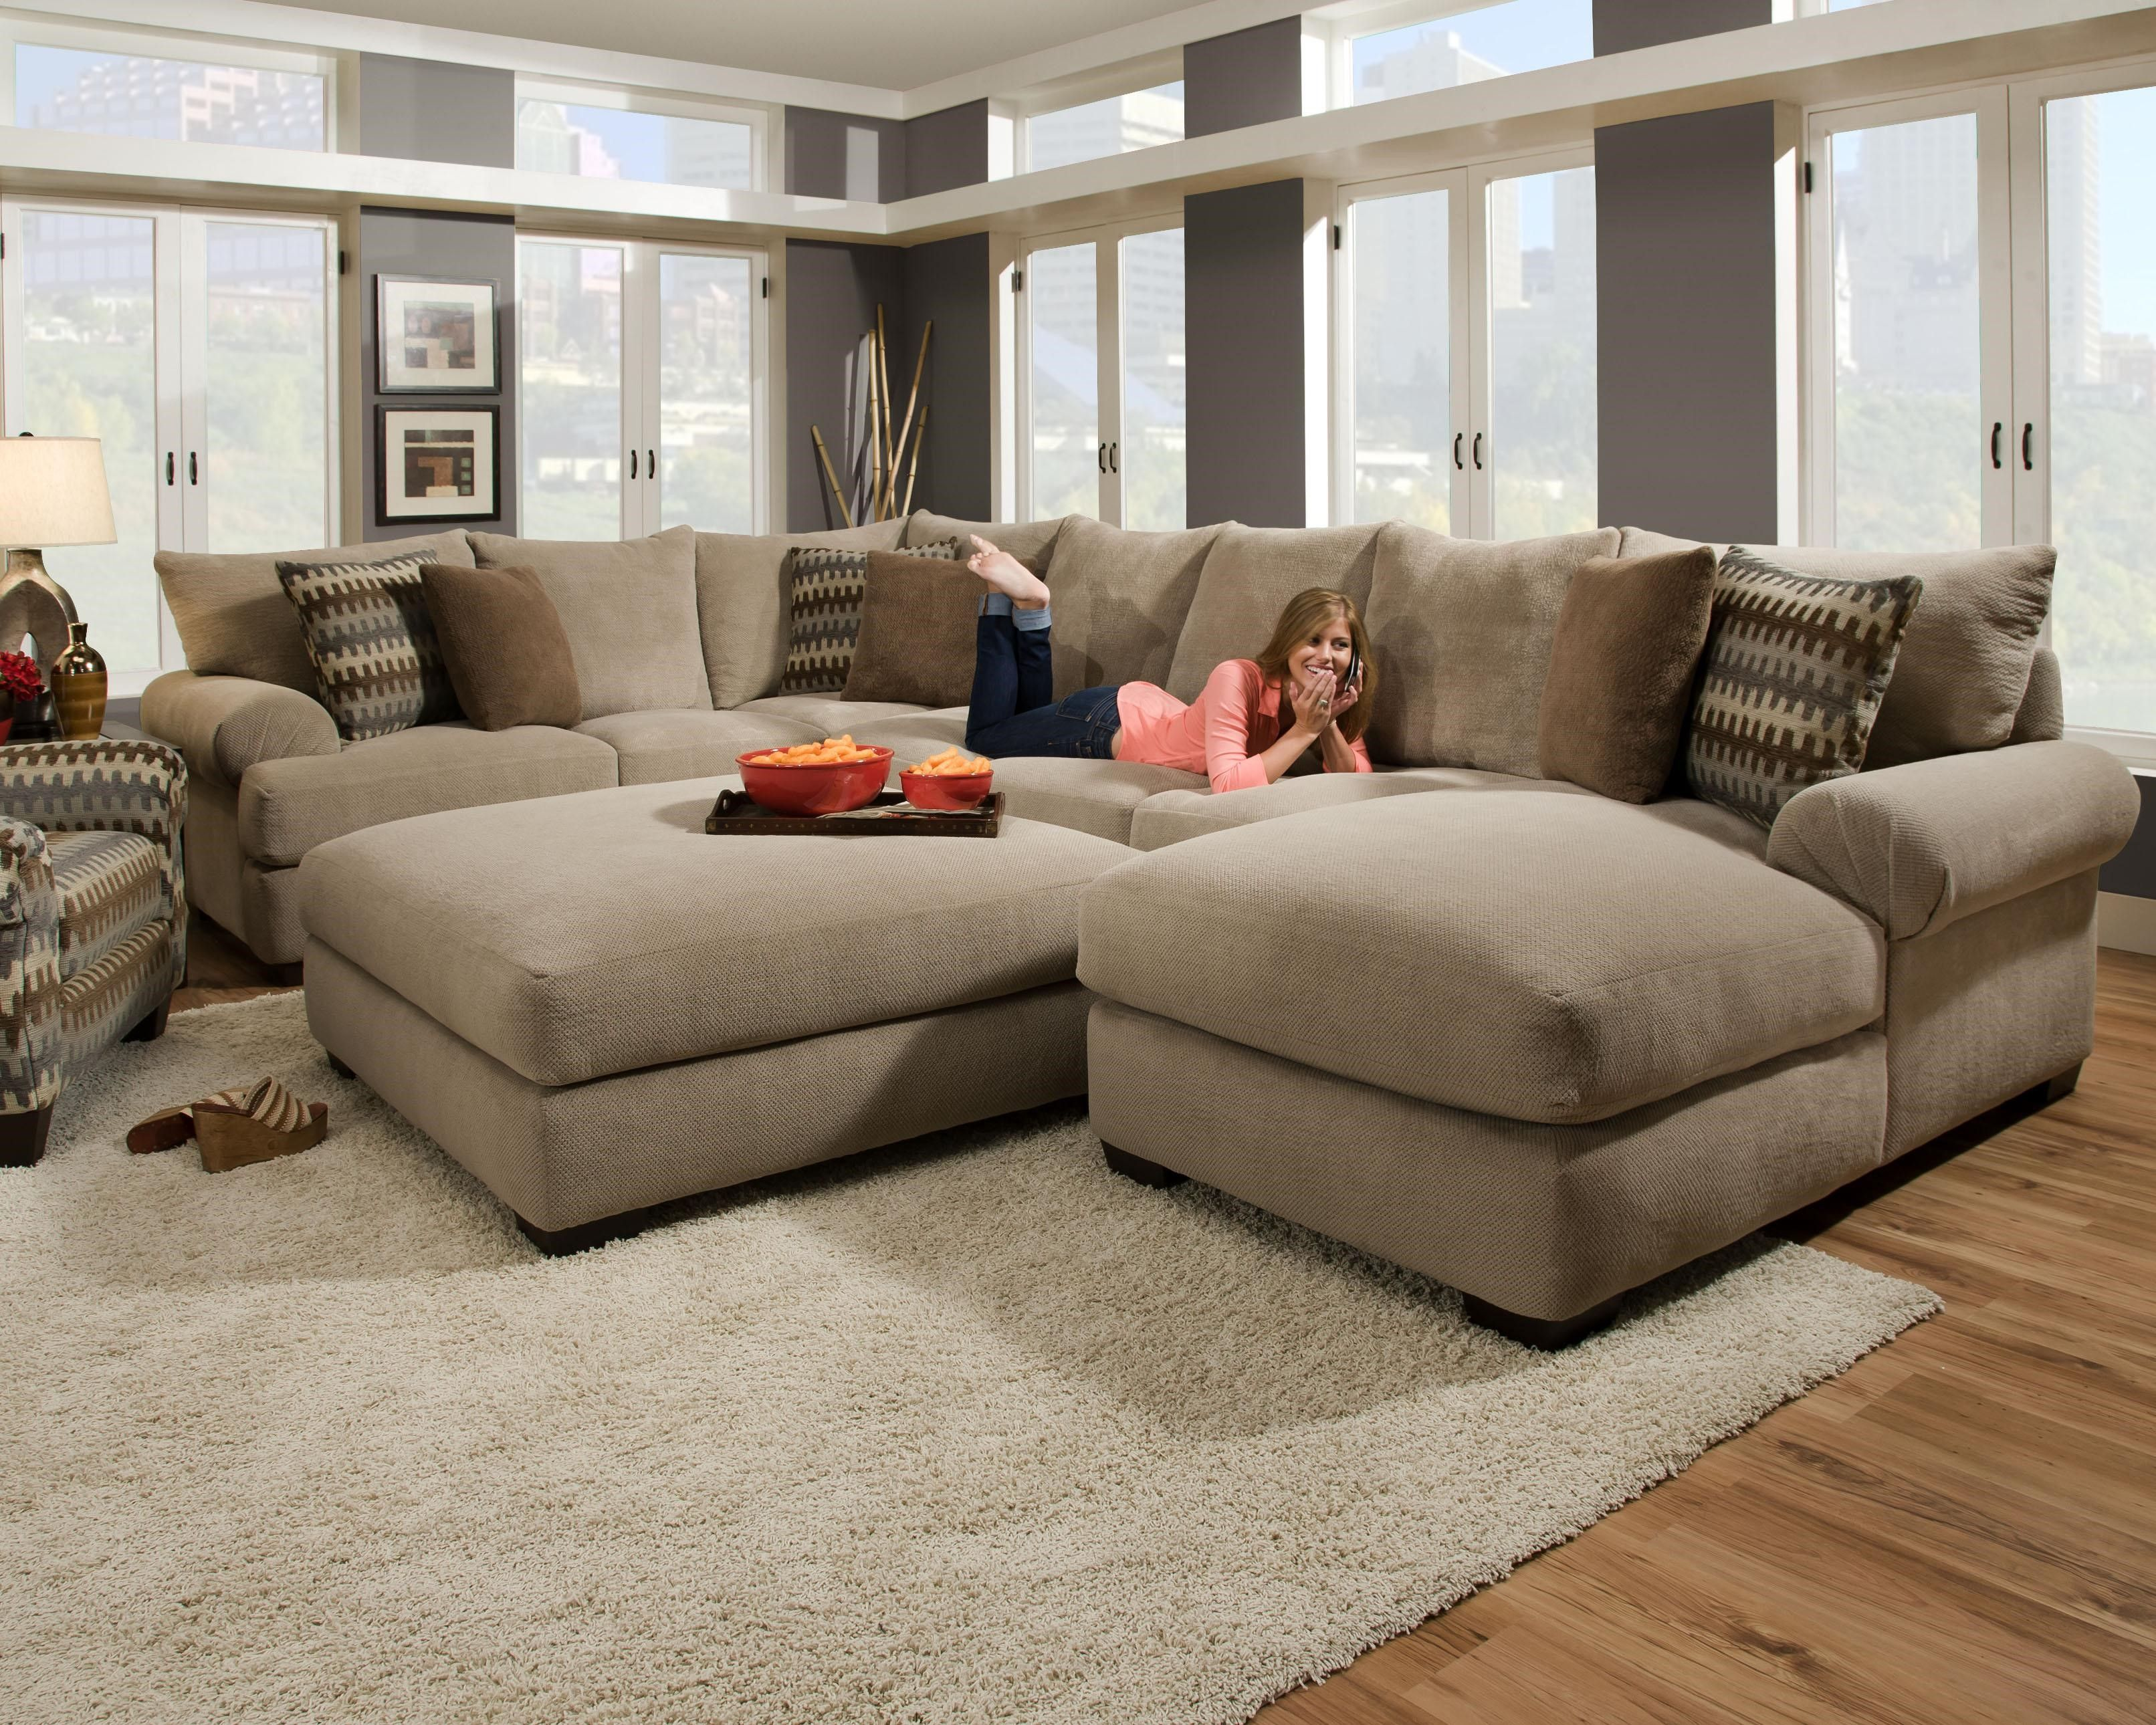 Cheap Sectional Sofa Image For Large Sectional Sofas Cheap Sectionalsofas Sectional